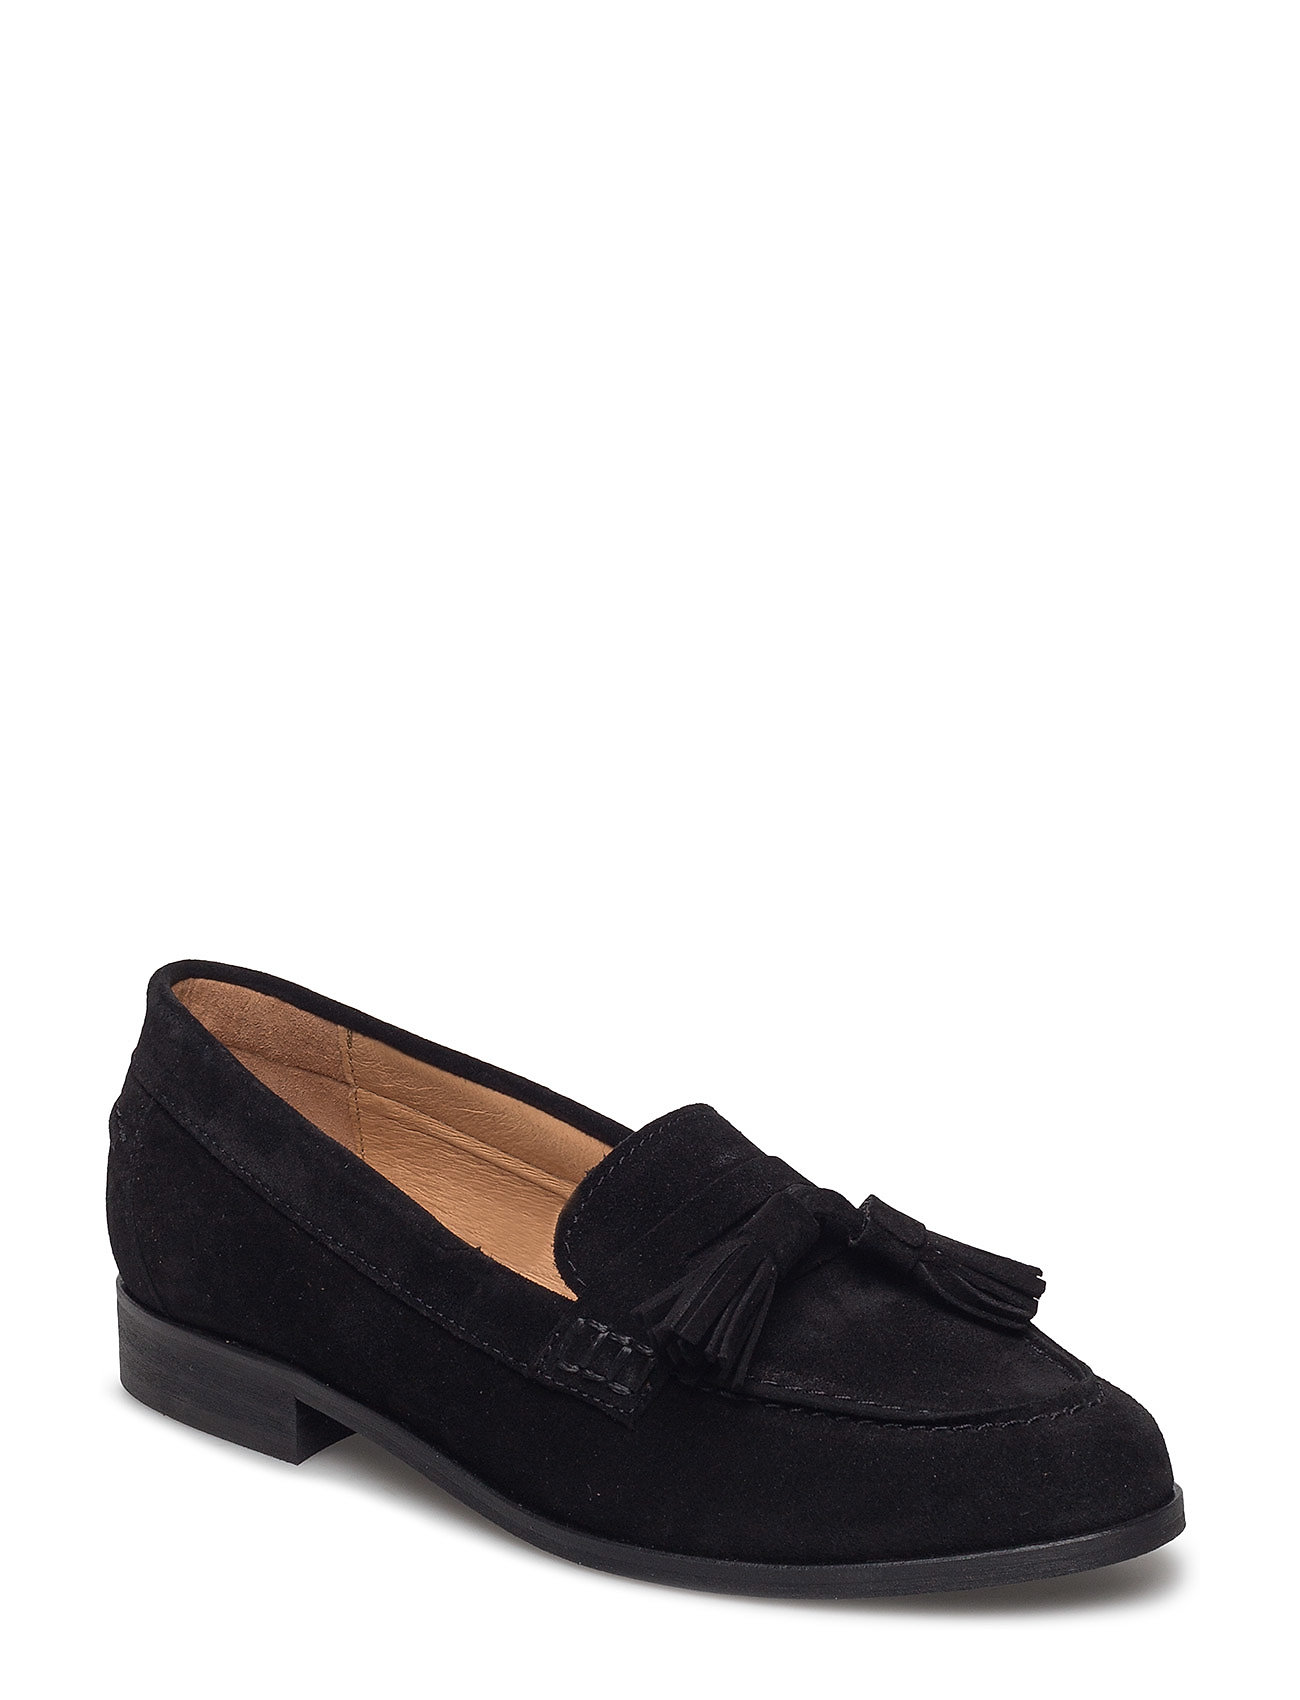 Image of Lady Loafer Loafers Flade Sko Sort Morris Lady (3470990883)